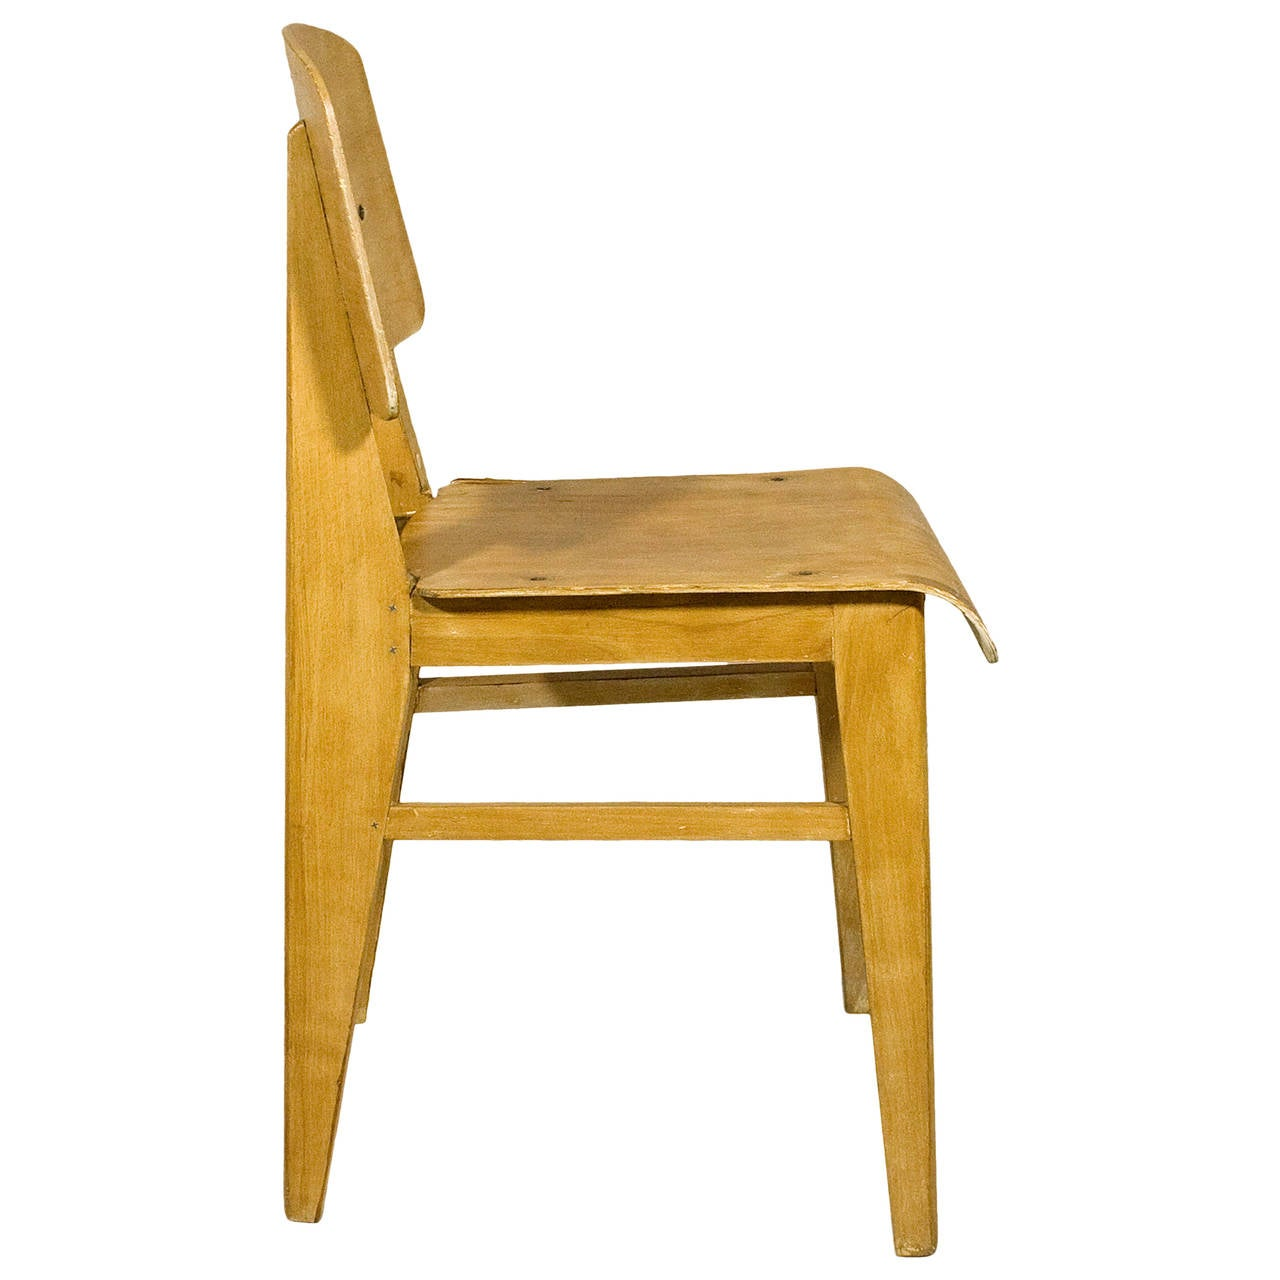 Jean prouv chaise en bois wooden standard chair circa 1940 france at 1stdibs - Chaise de jean prouve ...